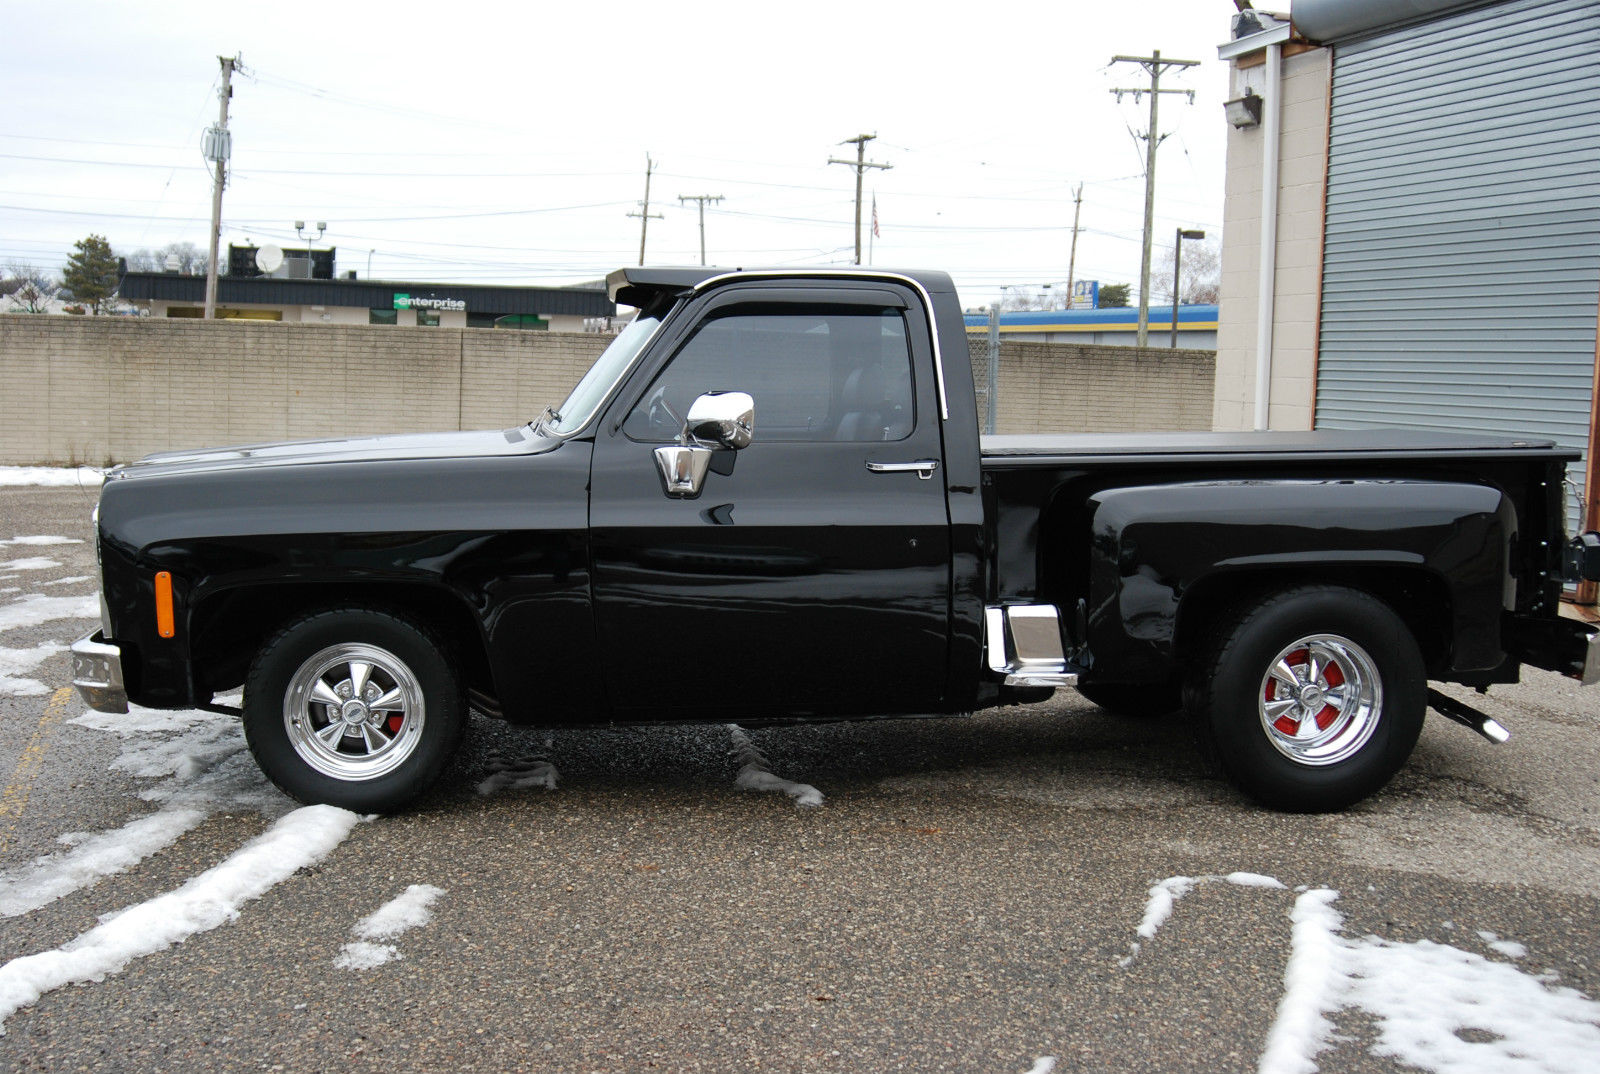 1980 chevrolet c10 short bed step side deluxe custom air ride lowered for sale in troy michigan for 1980 chevy truck interior parts